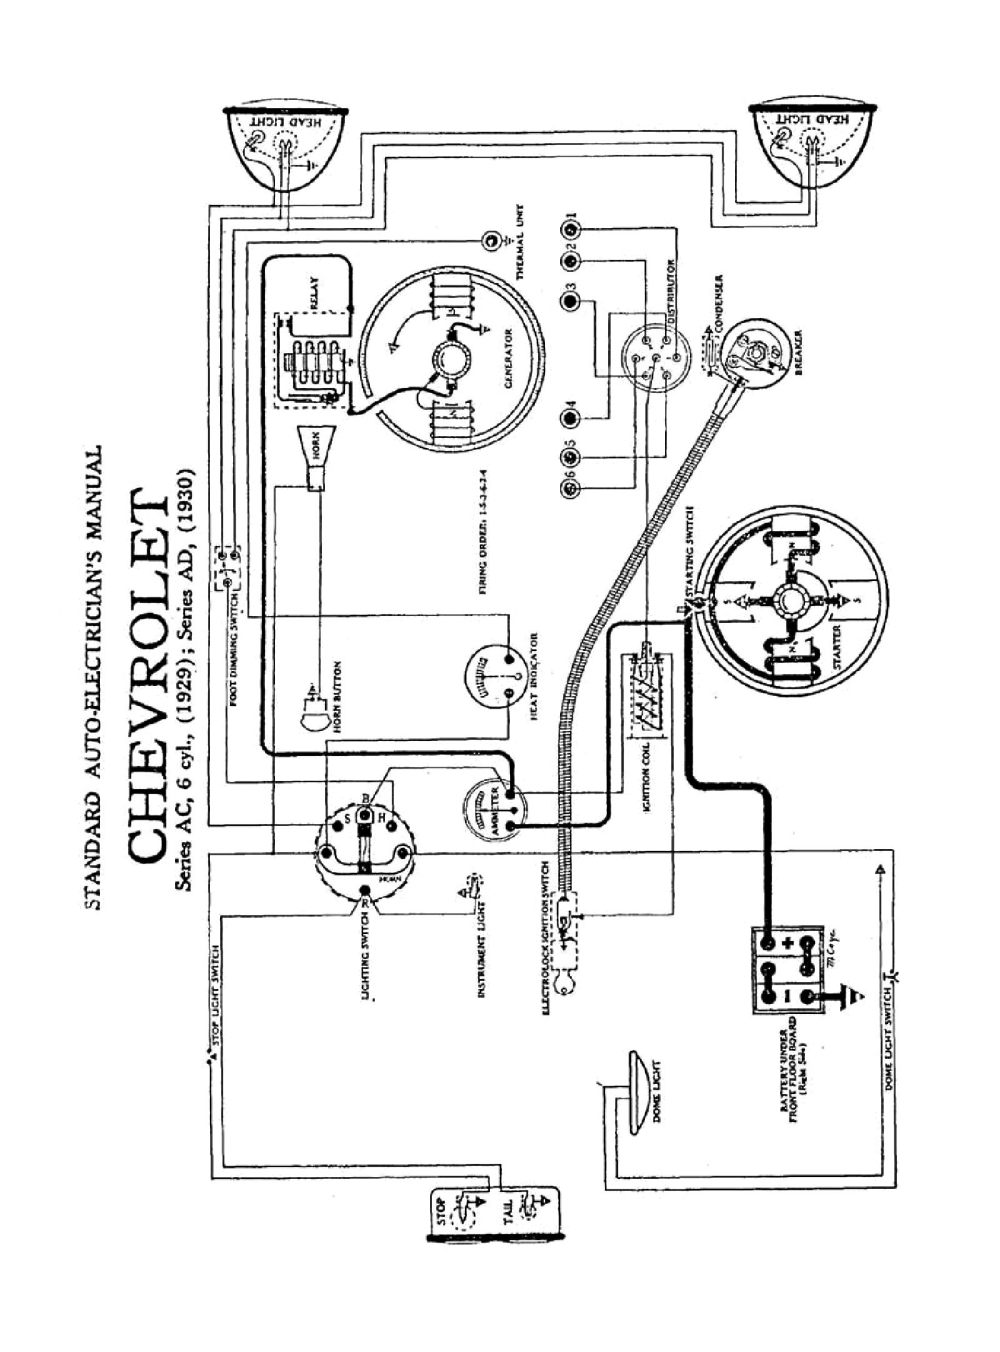 medium resolution of 1951 cadillac wiring diagram 1 10 nuerasolar co u2022 2003 cadillac wiring diagrams 1951 8n wiring system diagram wiring diagram rh a5 fehmarnbeltachse de